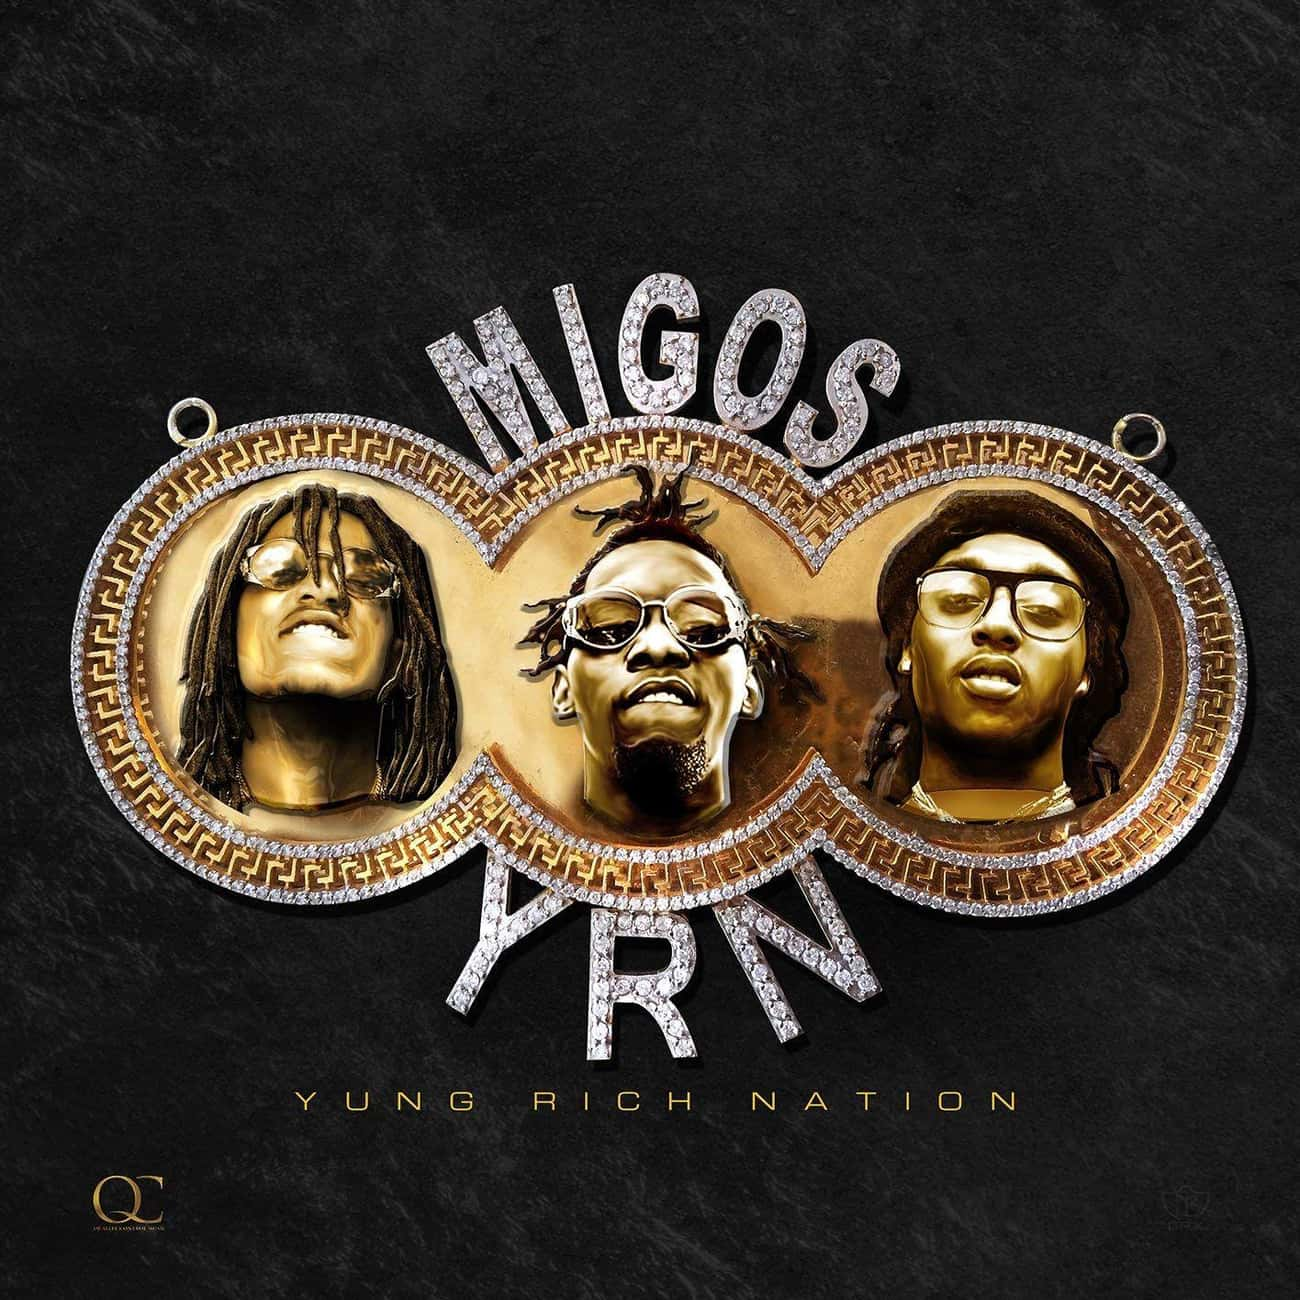 Yung Rich Nation is listed (or ranked) 2 on the list The Best Migos Albums, Ranked